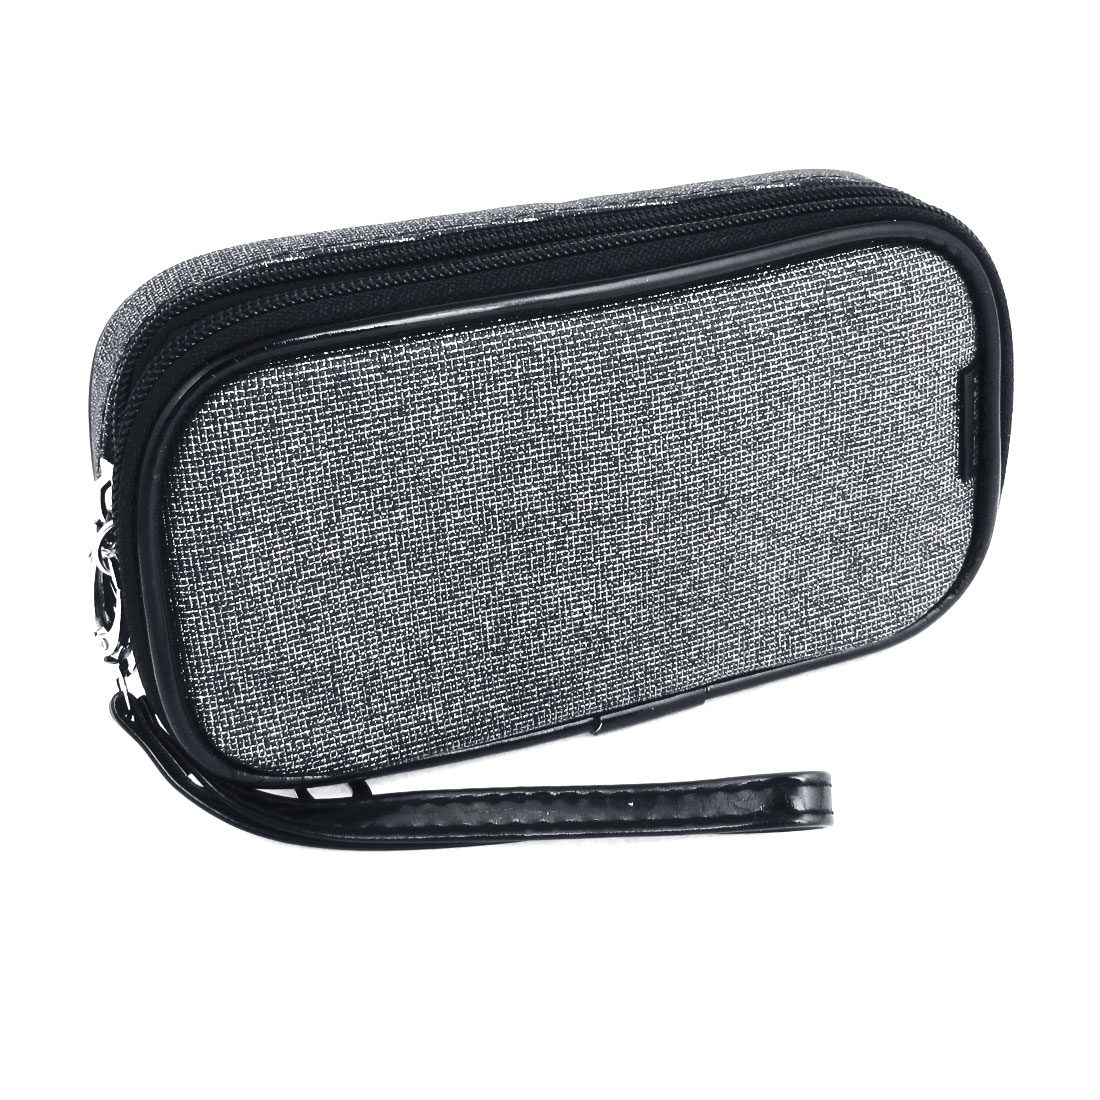 Gray 2 compartments Zipper Cosmetic Bag Purse Wallet w Mirror for Ladies